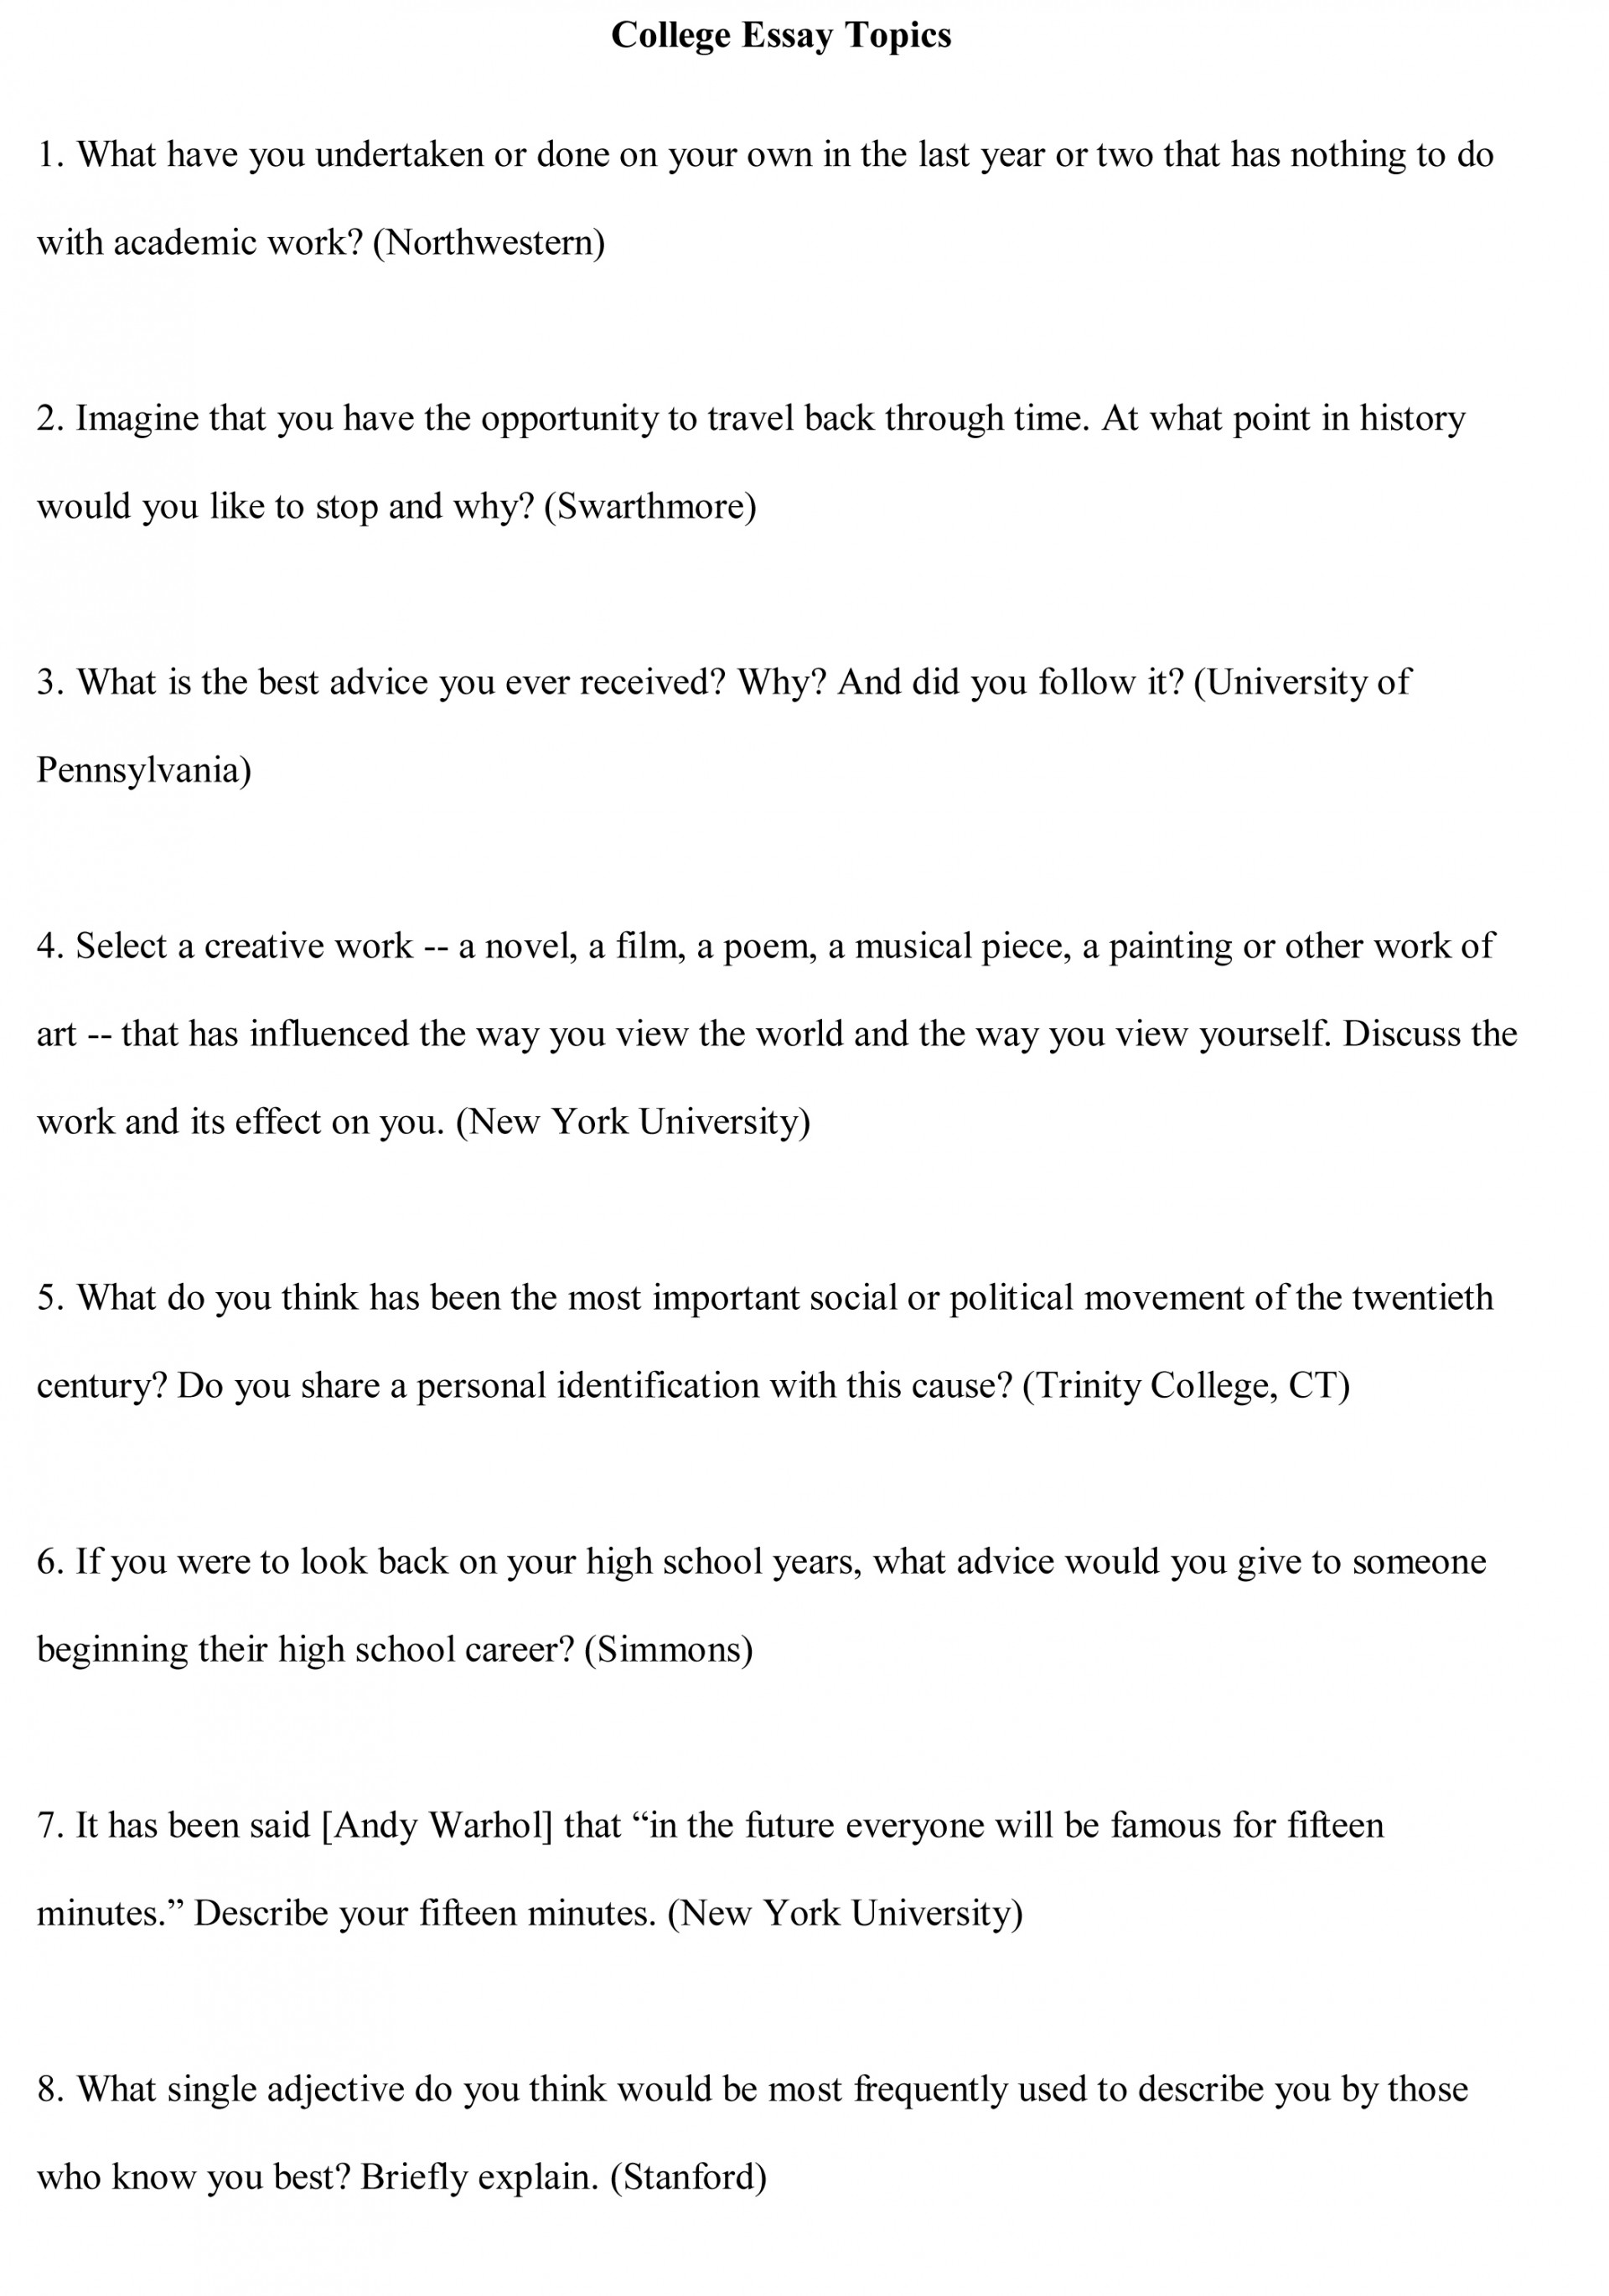 019 College Essay Topics Free Sample1 Example High School Dreaded Experience 1920